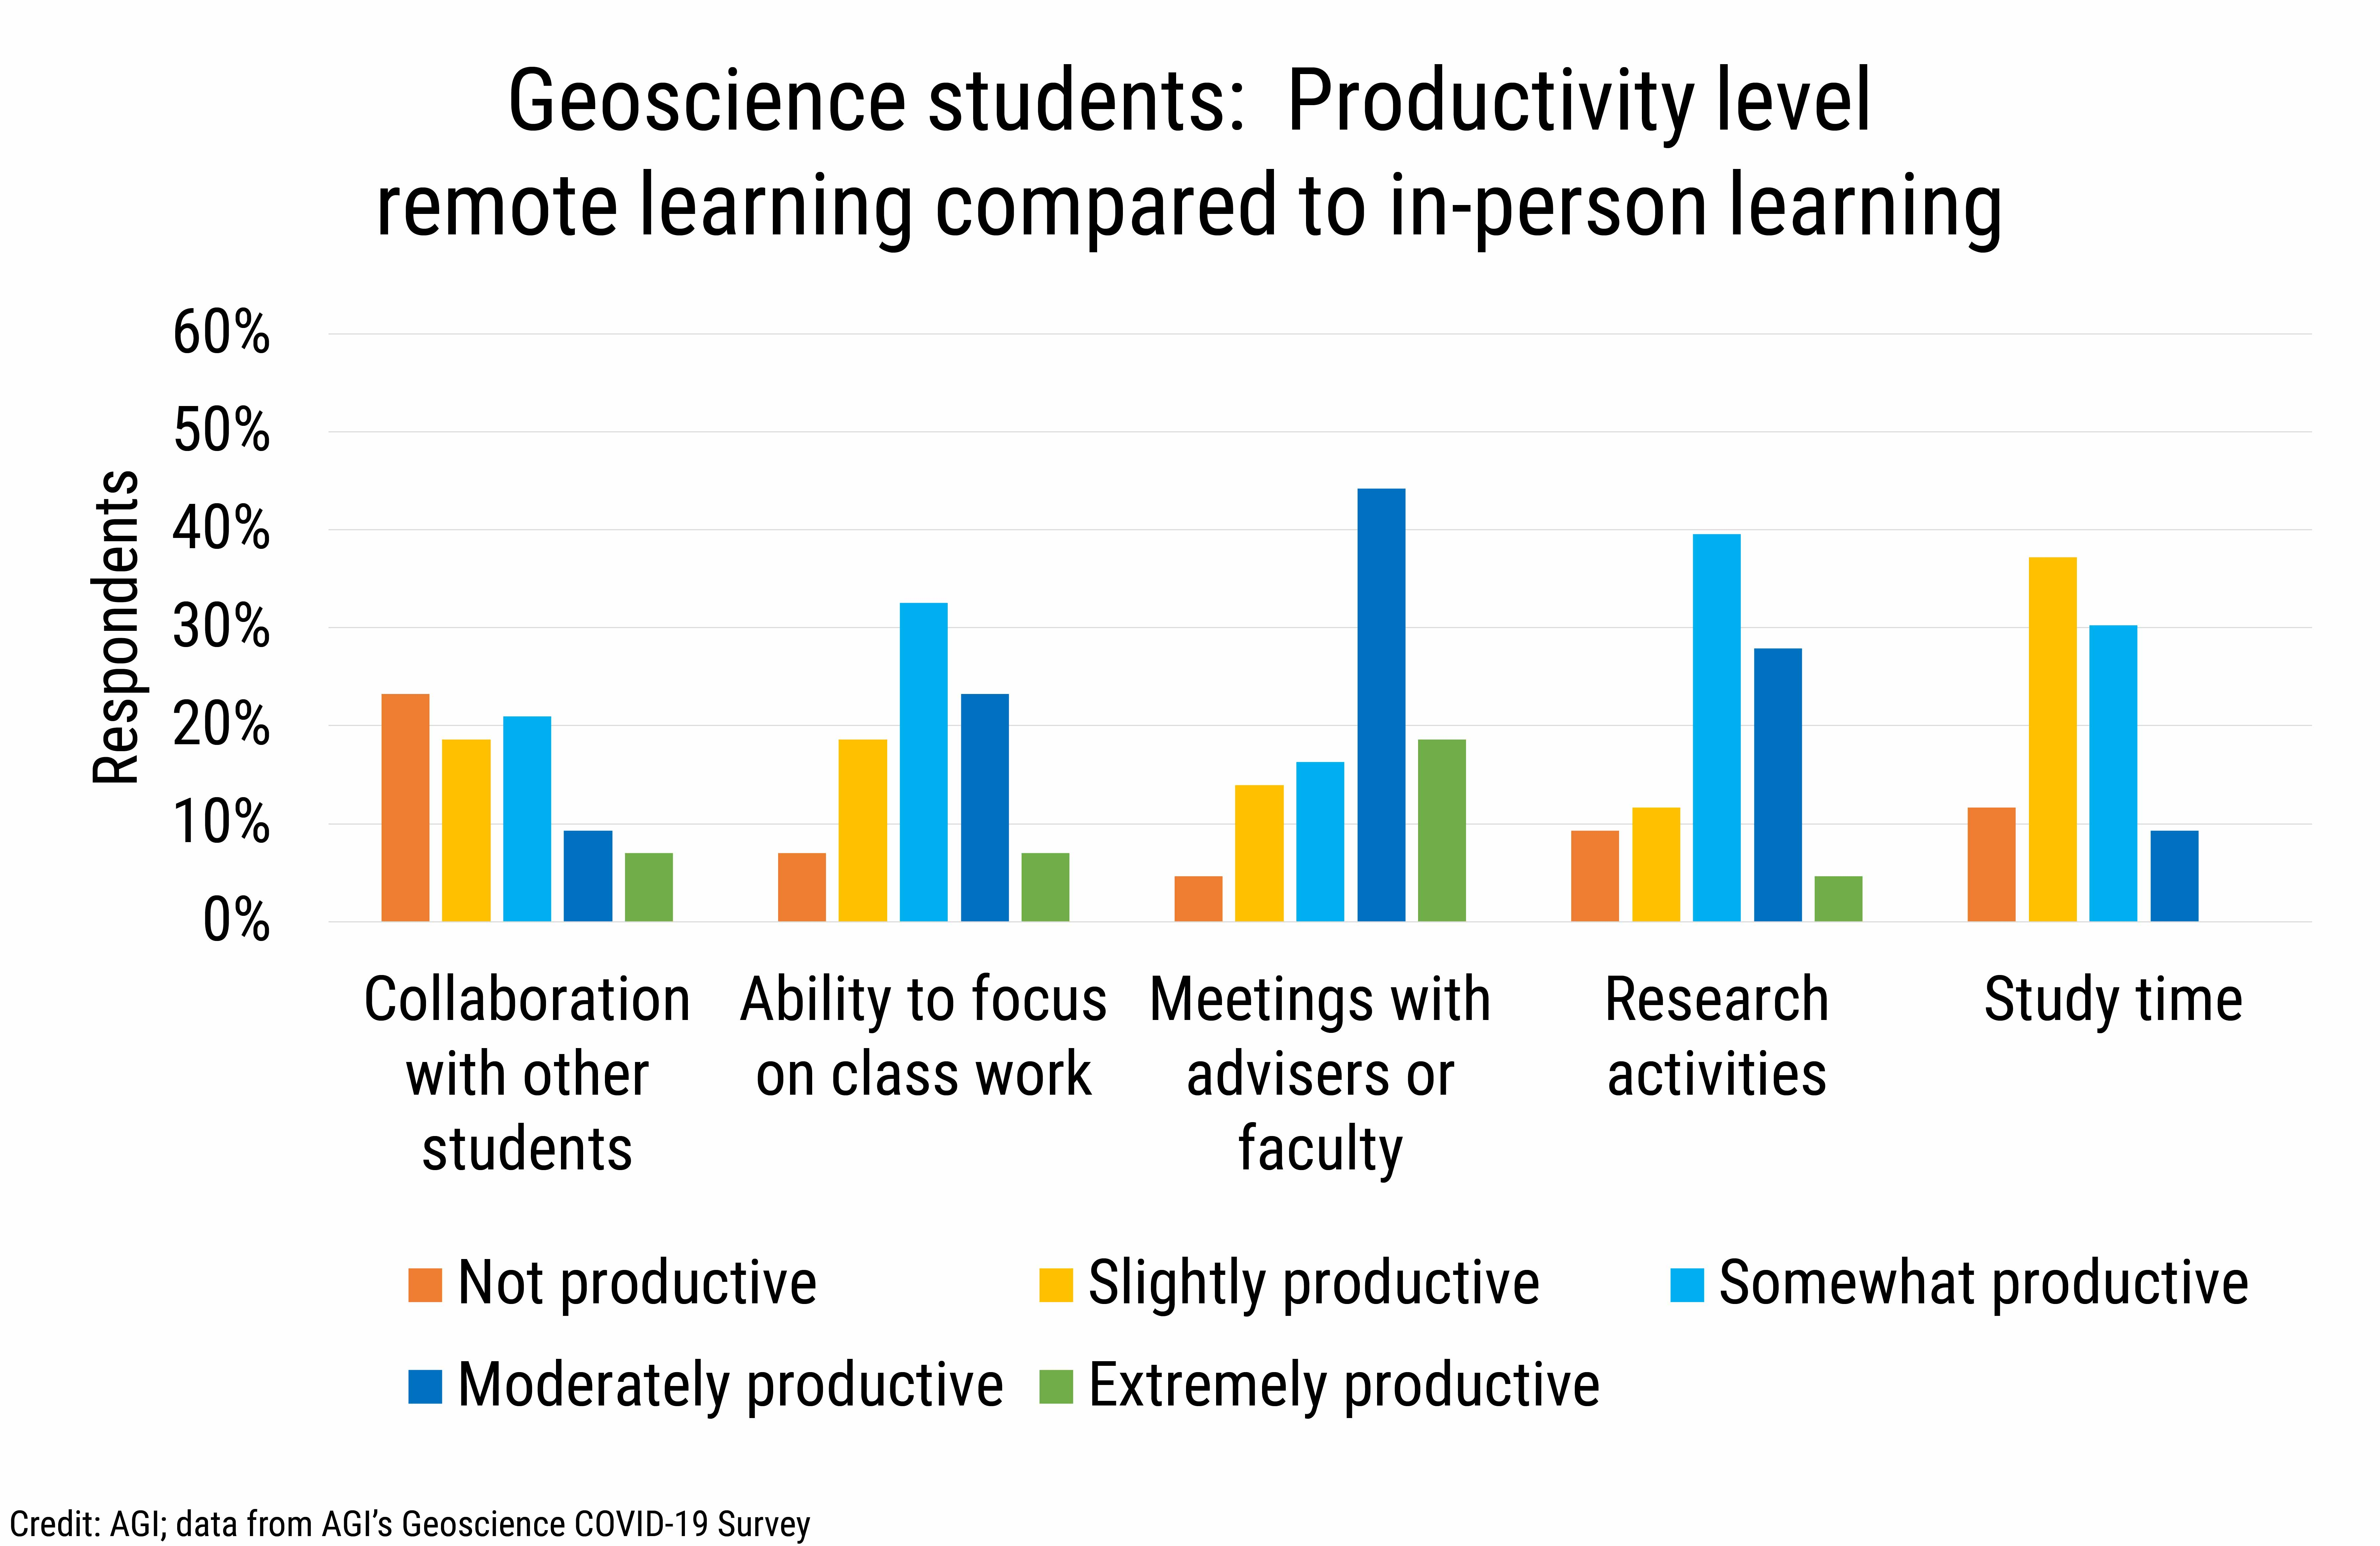 DB_2021-018 chart 04: Geoscience students: Productivity level remote learning compared to in-person learning (Credit: AGI; data from AGI's Geoscience COVID-19 Survey)